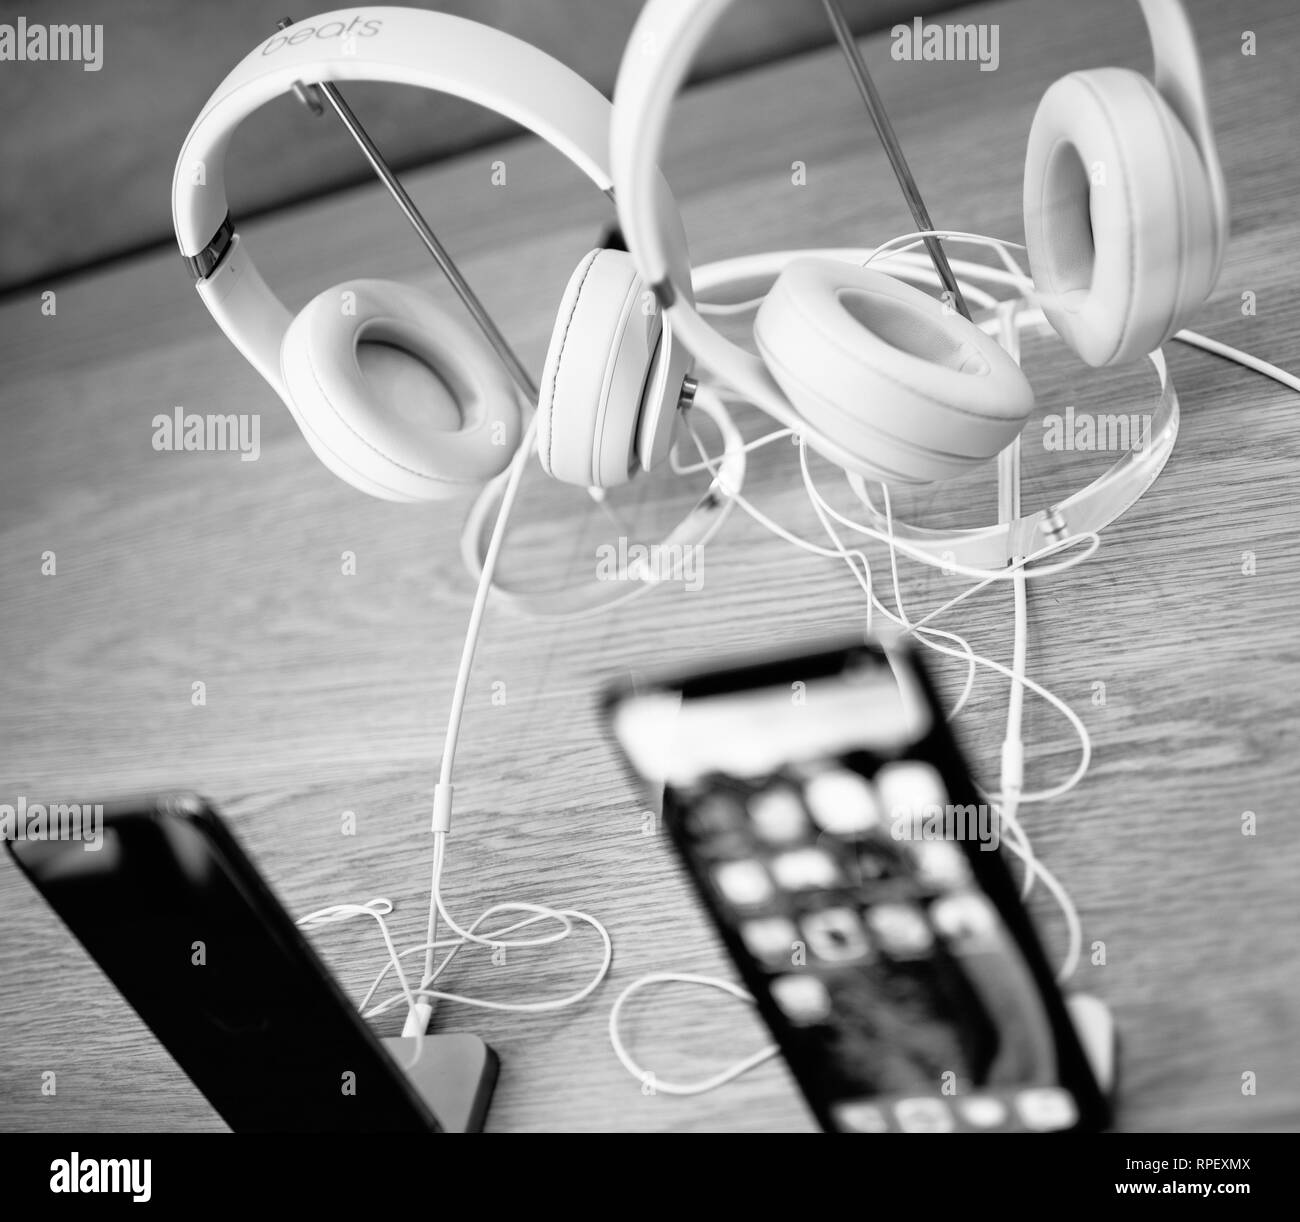 PARIS, FRANCE - OCT 26, 2018: Detail of Apple iphone and Beats by Dr Dre headphones in Apple Store computers - Stock Image